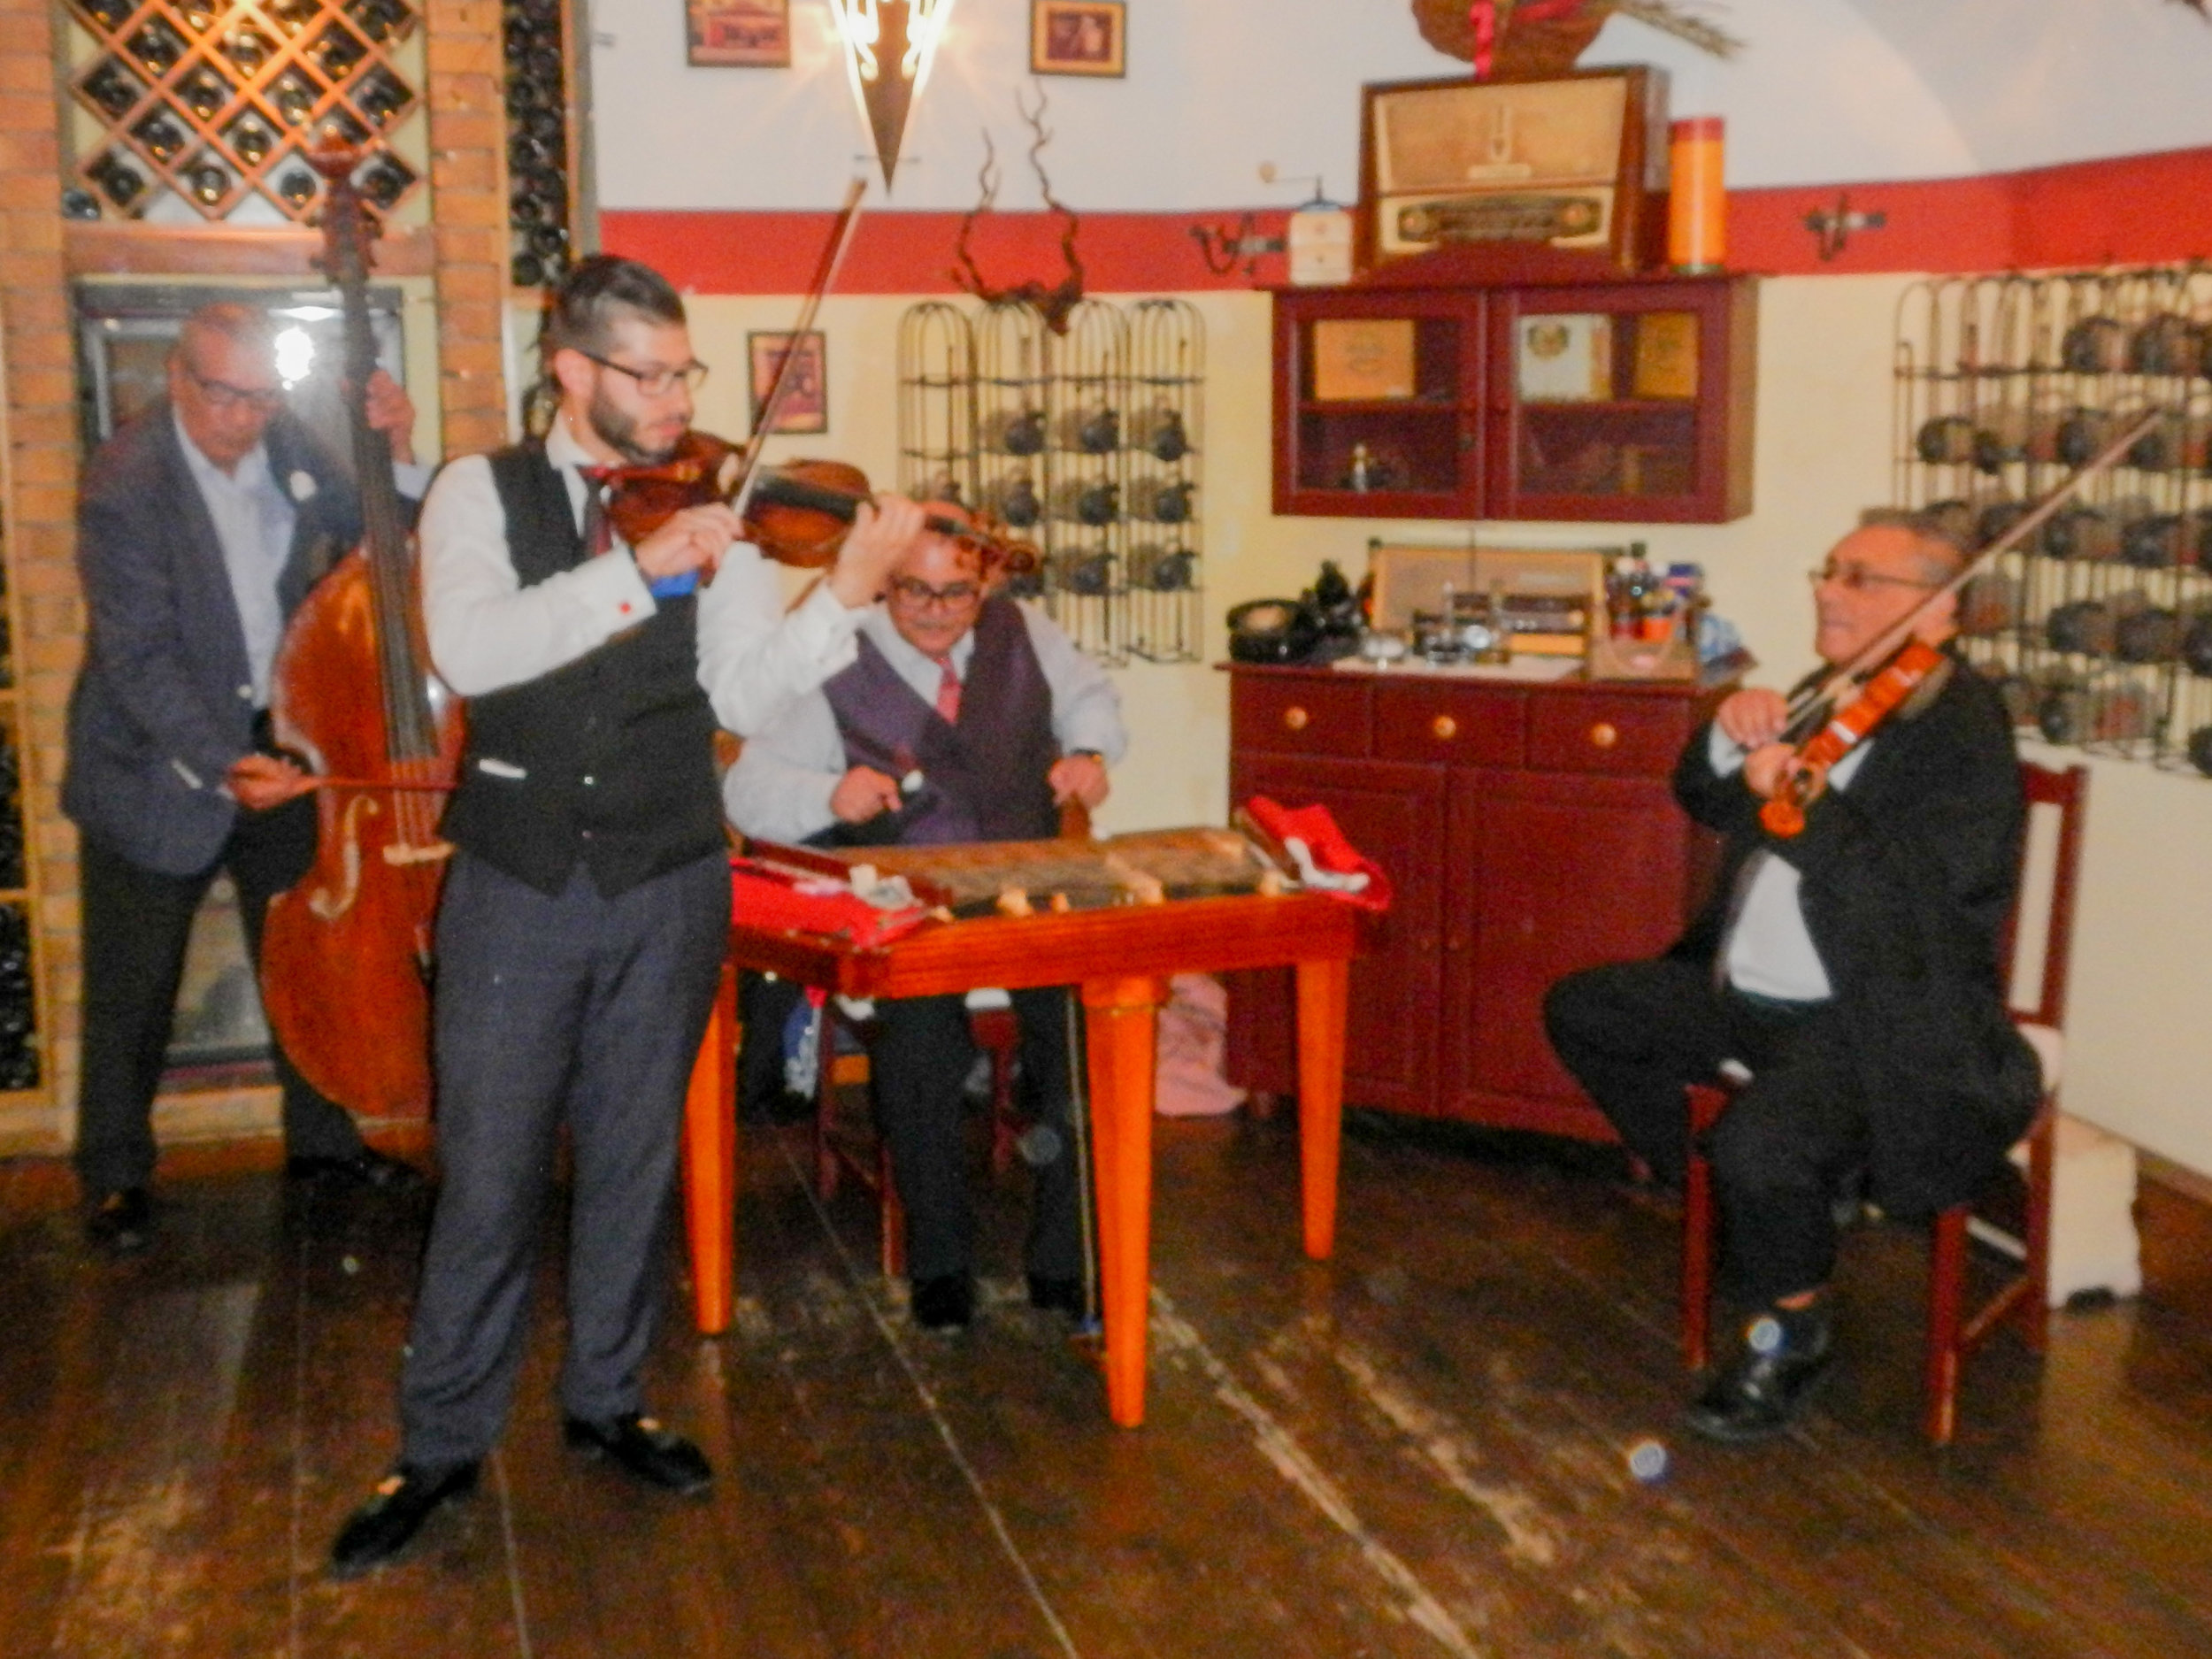 Band at restaurant, Budapest